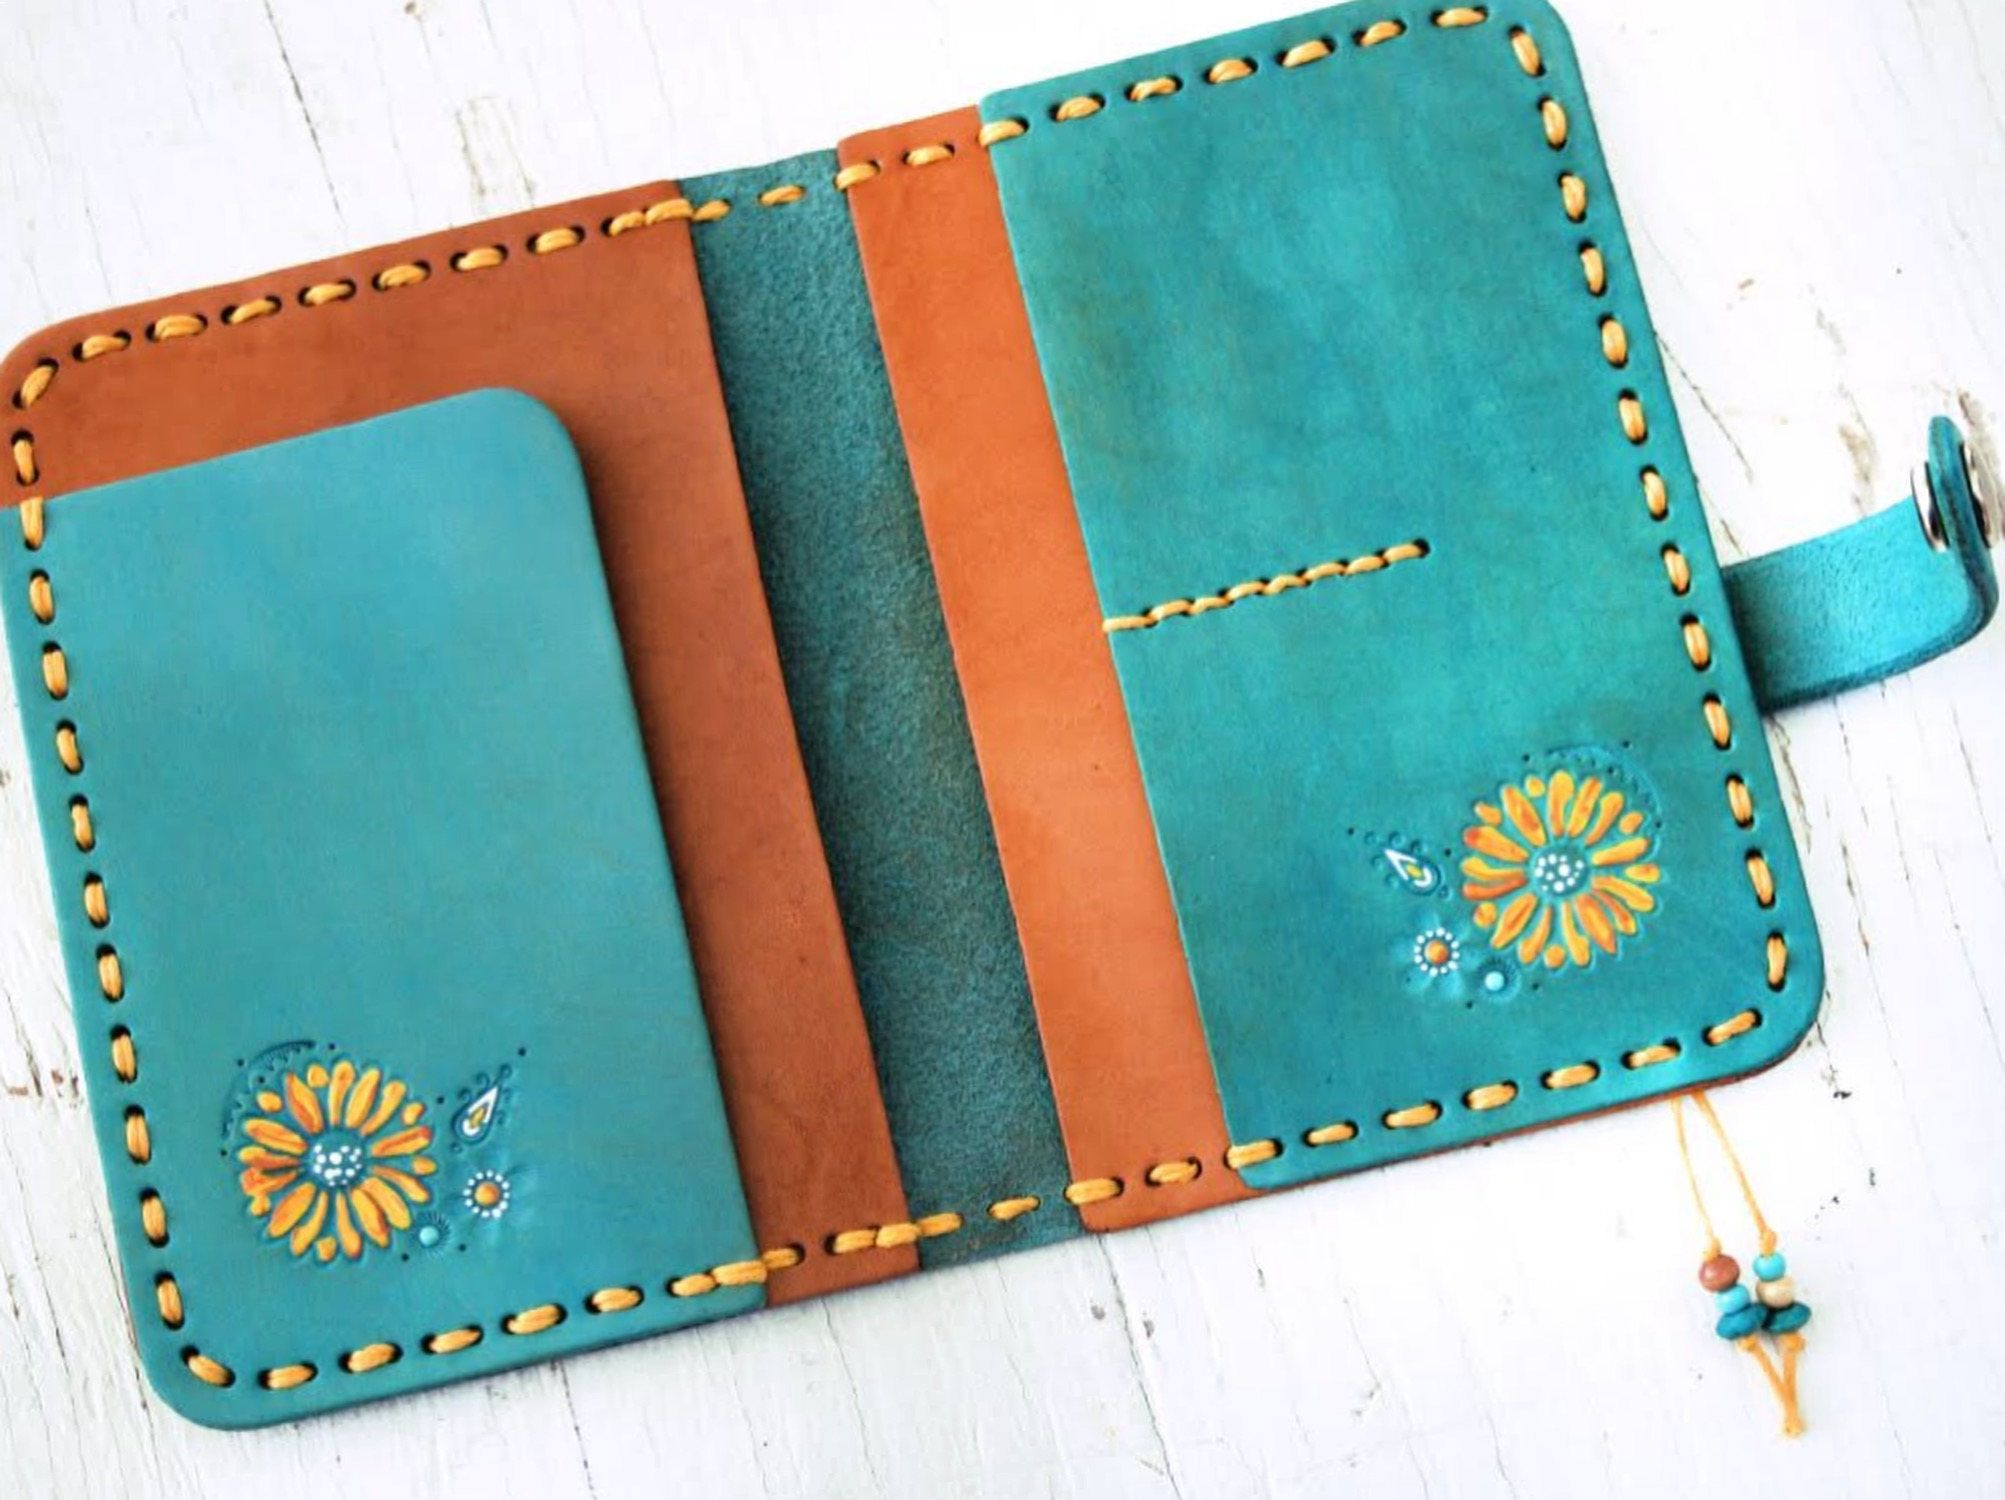 Leather Passport Cover – Turquoise Dreamcatcher – Steer skull and sunflowers – Day of the Dead Southwestern Feathers – Made to Order